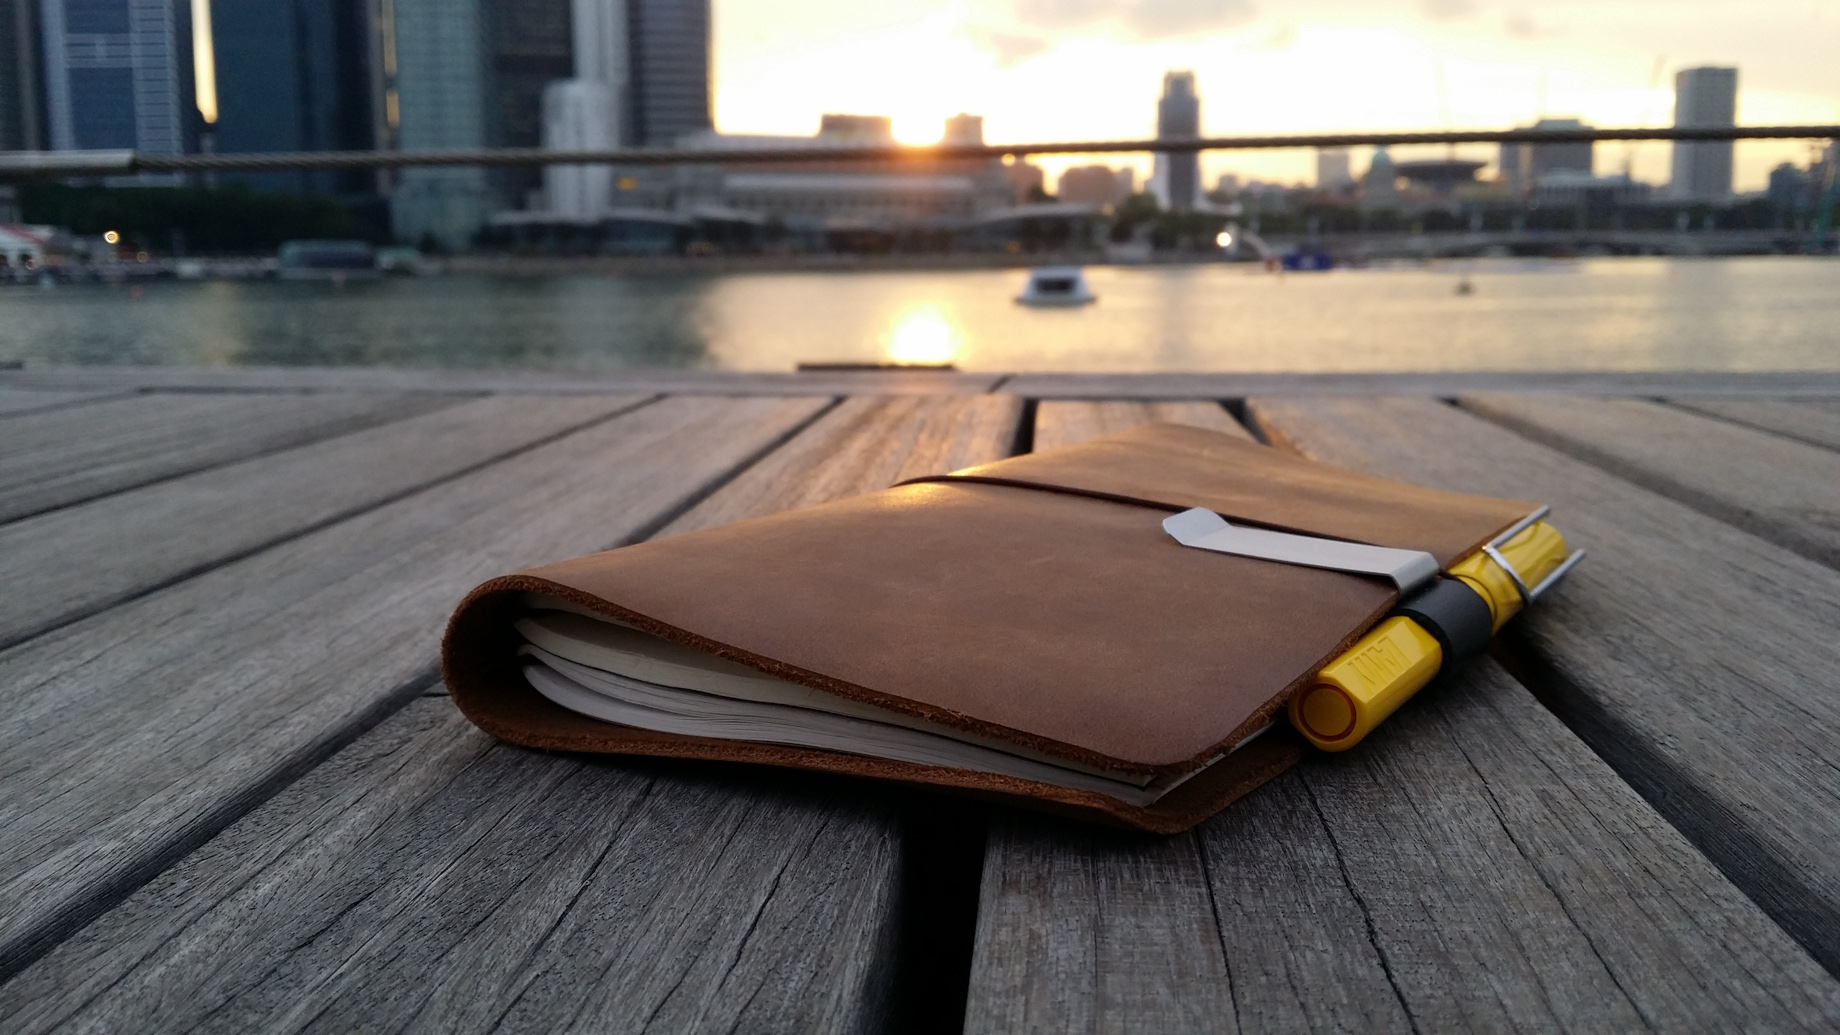 Leather Bound - Chic Travel Trends Fashionable Items to Bring Along for Globetrotting Luxury Escapes